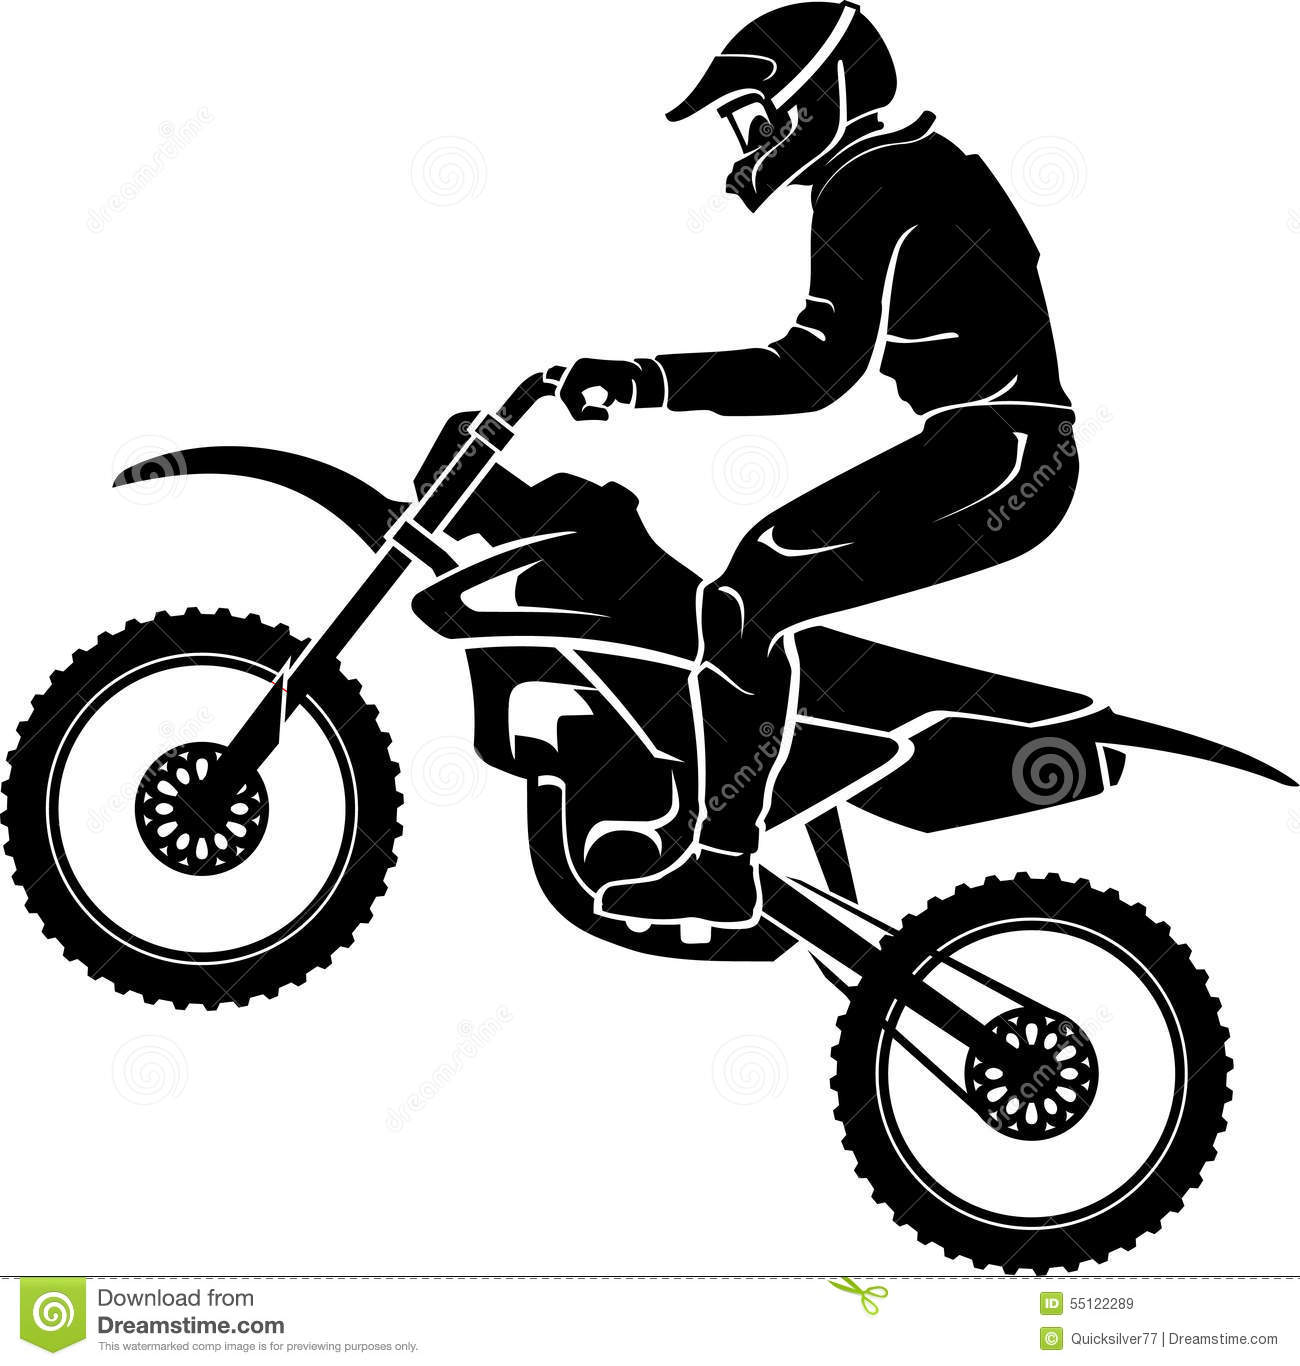 Extreme Motorcross Exhibition Stock Vector Illustration Of Shadow Bike 55122289